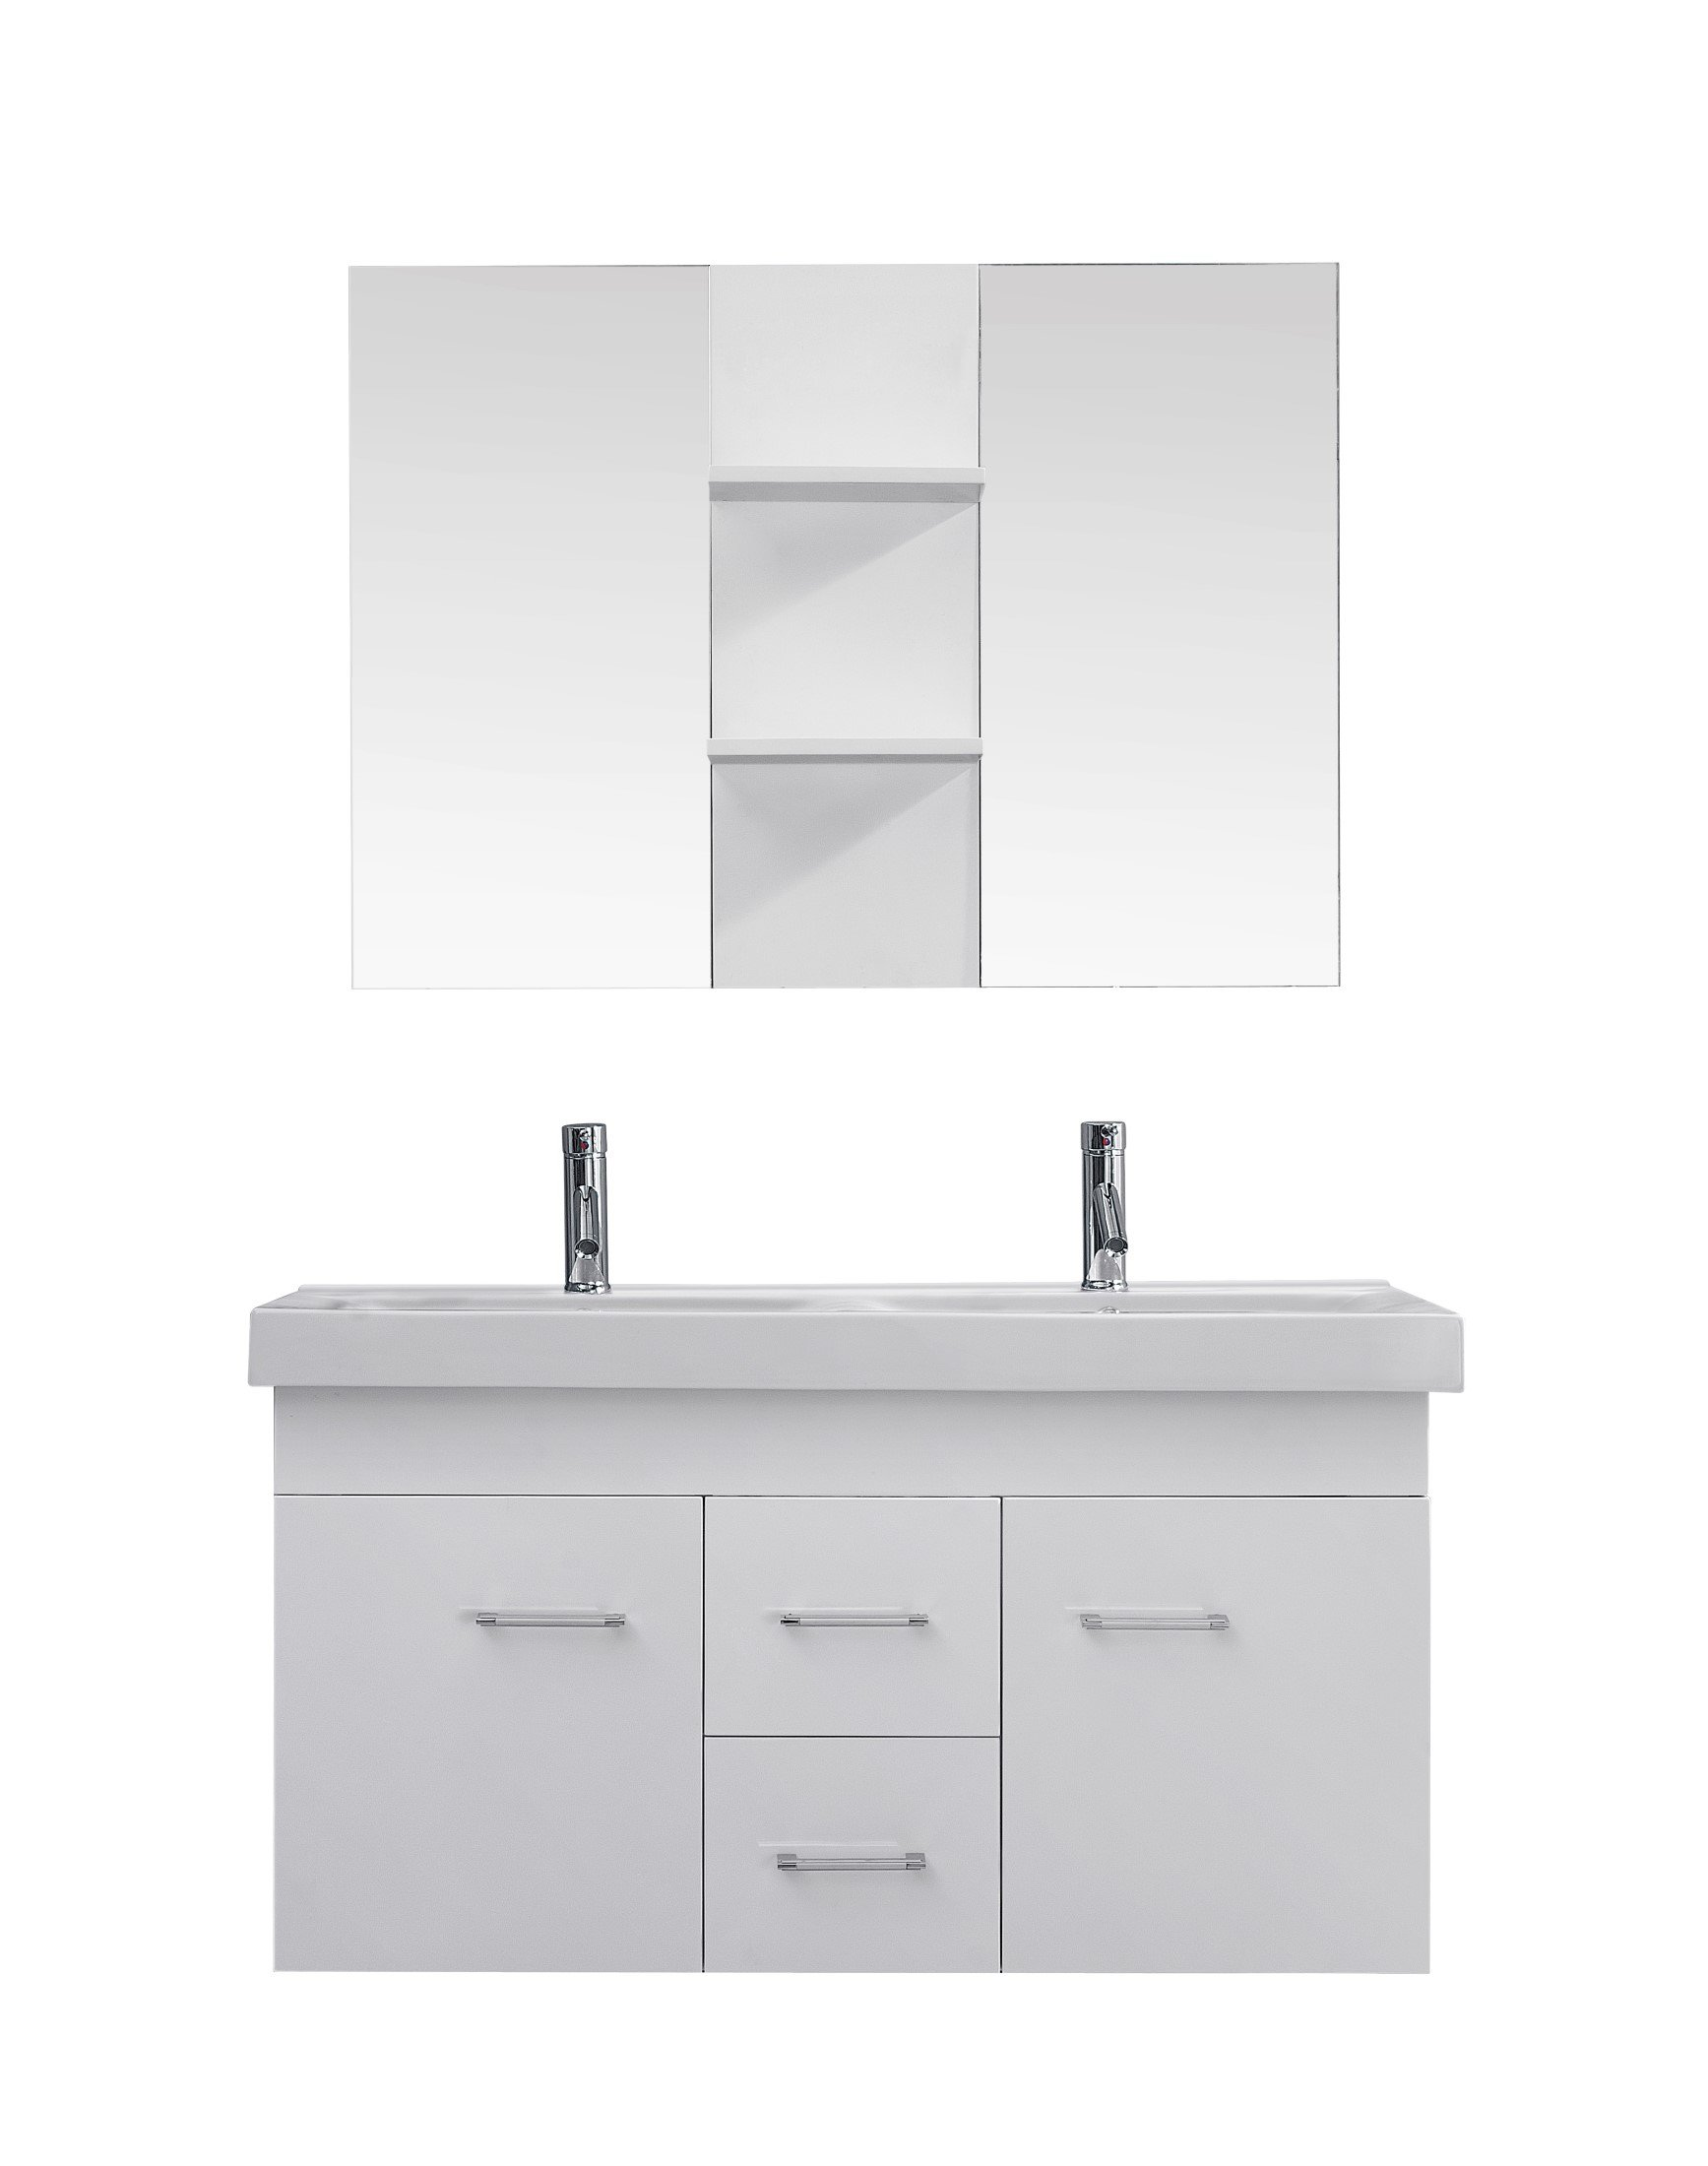 Virtu USA UM-3067-C-WH Modern 48-Inch Double Sink Bathroom Vanity Set with Polished Chrome Faucet, White